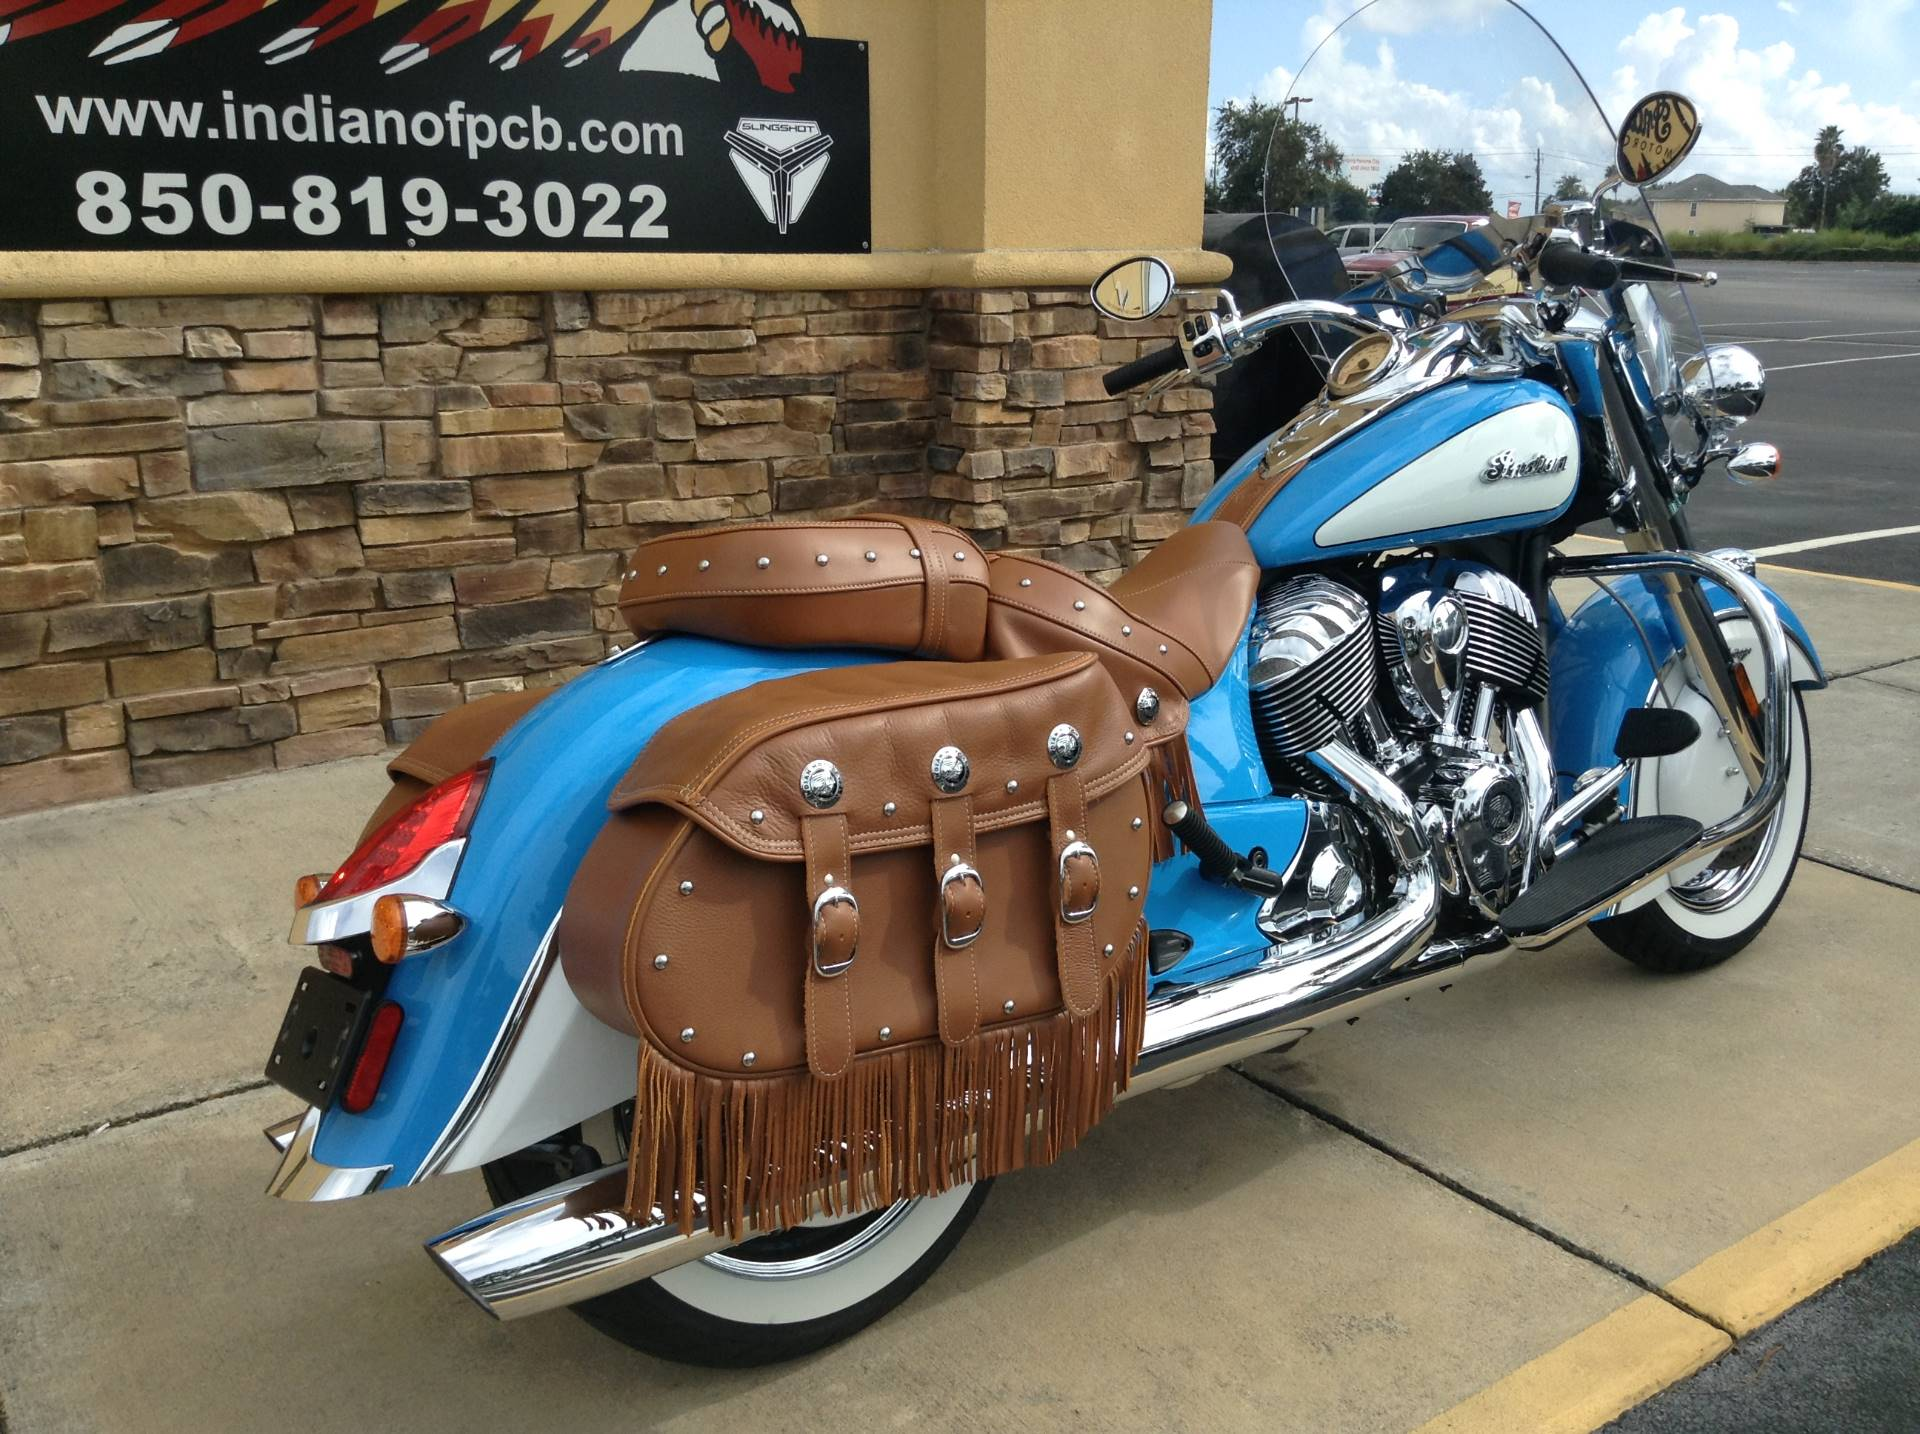 2019 Indian VINTAGE in Panama City Beach, Florida - Photo 3